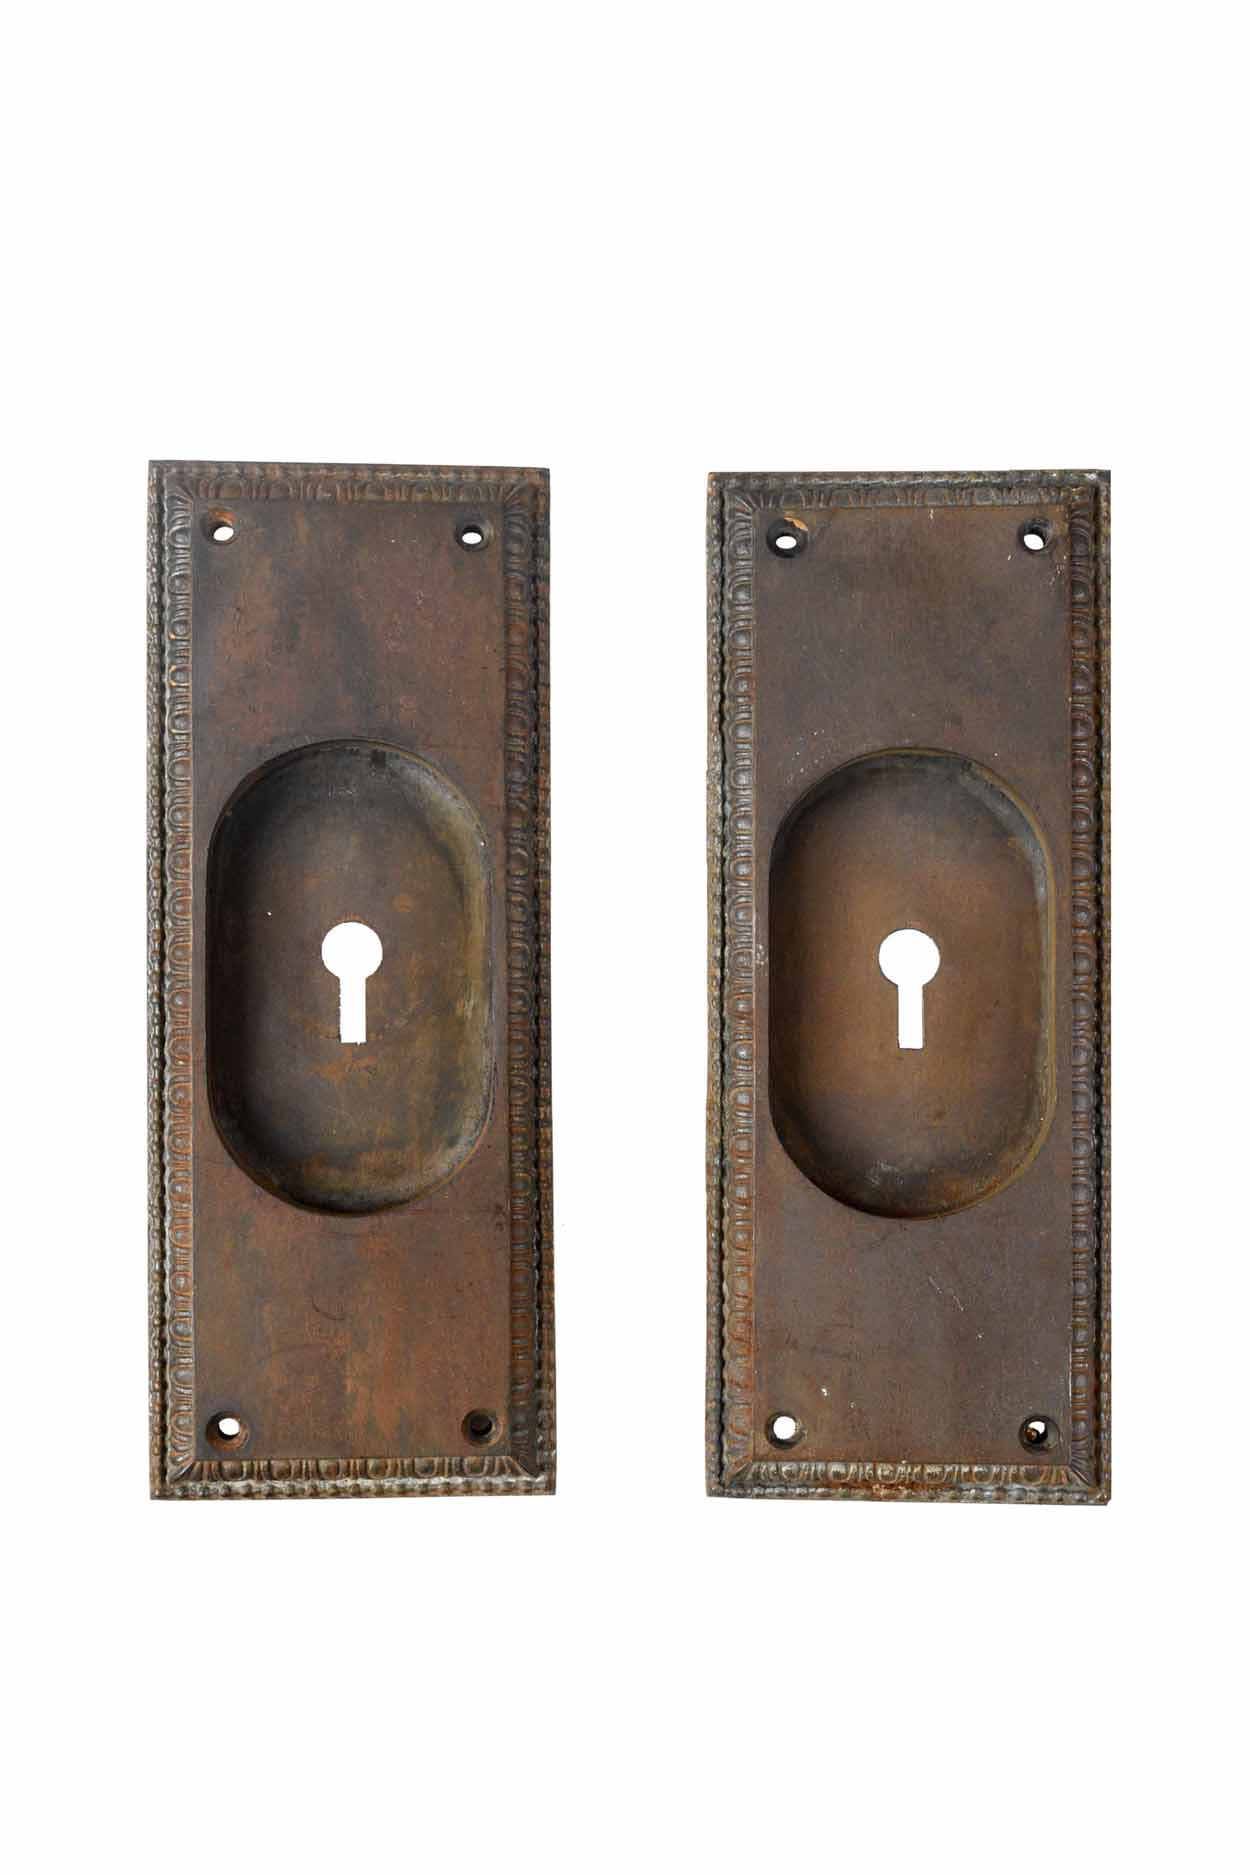 EGG AND DART POCKET DOOR INSET HANDLE LARGE AA# H20185   2 available   $45.00 each